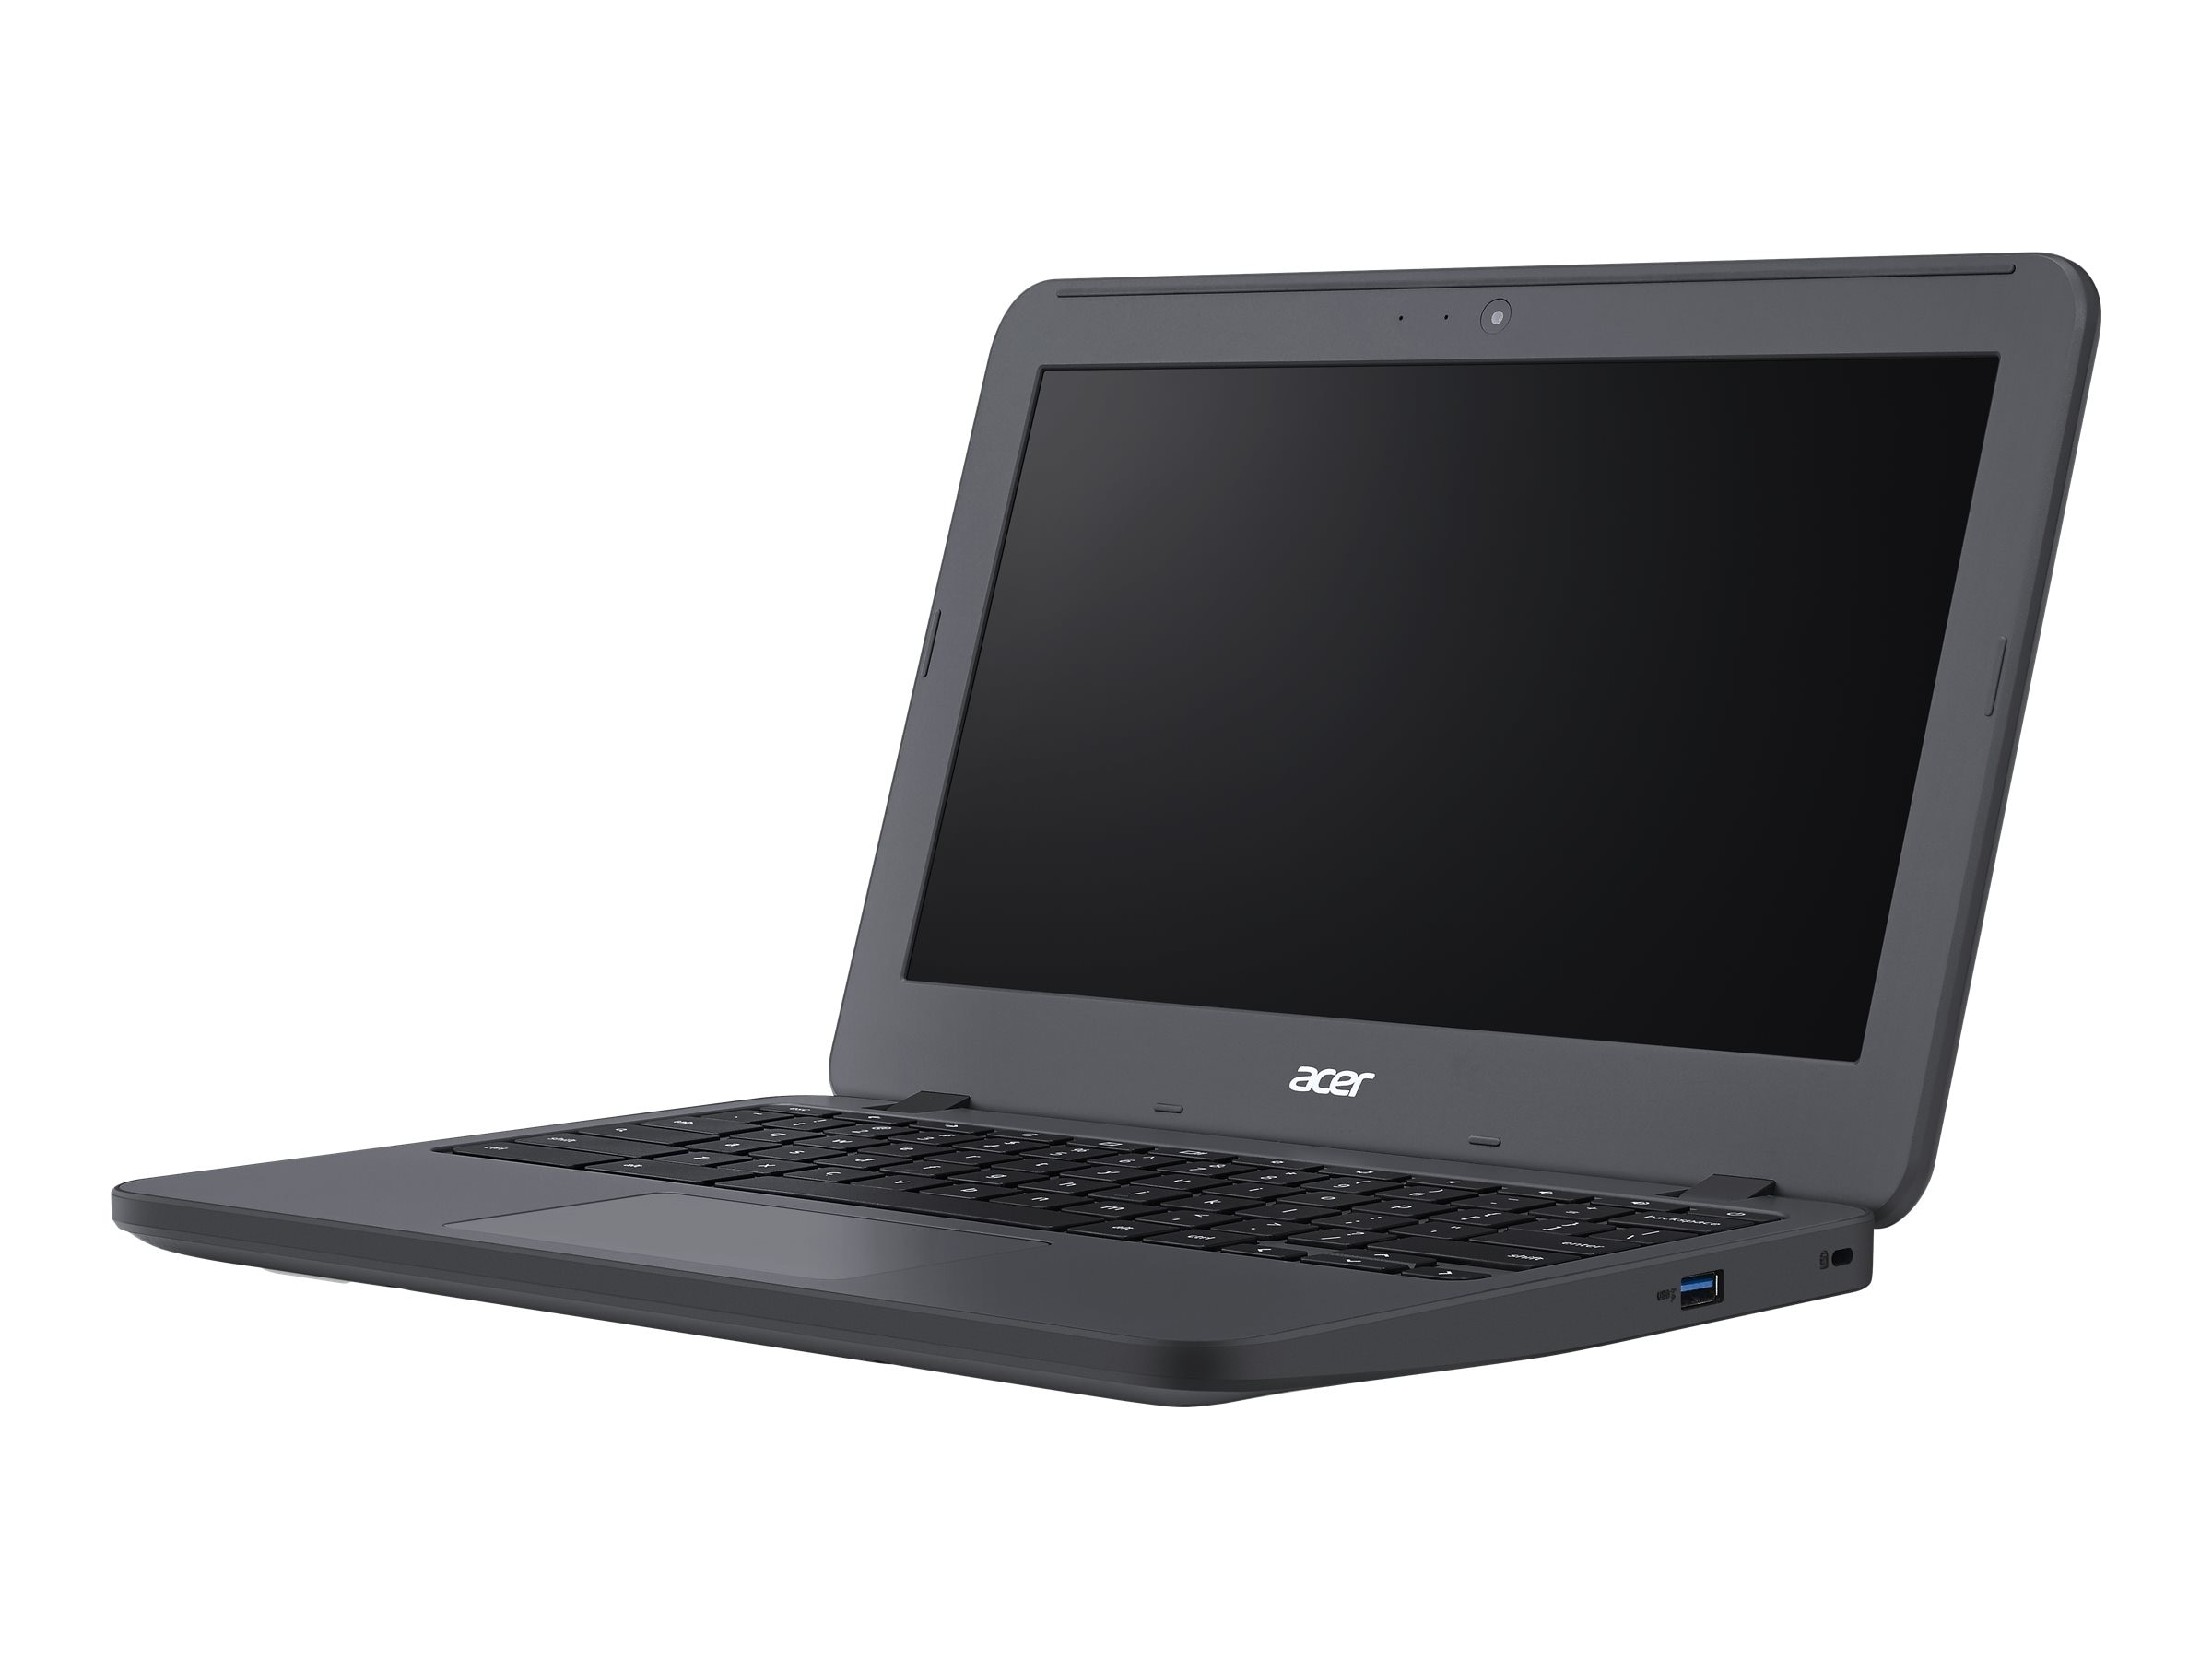 Acer Chromebook C731-C8VE Celeron N3060 1.6GHz 4GB 16GB ac BT WC 3C 11.6 HD Chrome, NX.GM8AA.001, 33591311, Notebooks